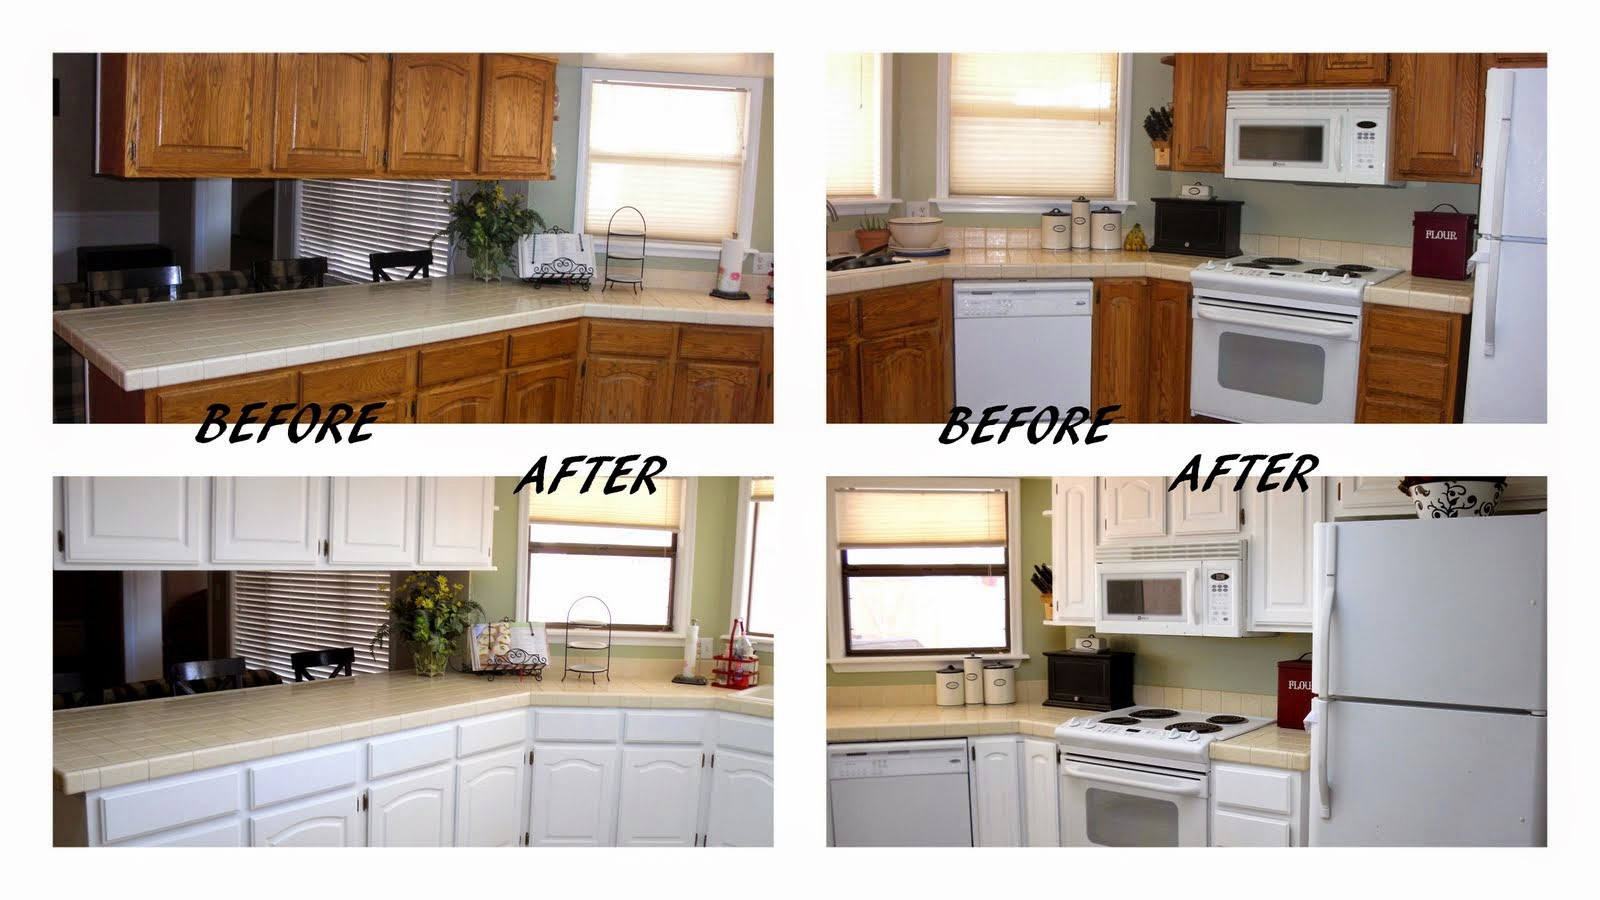 Kitchen Makeover Ideas On A Budget Part - 17: Cheap Kitchen Makeover Ideas Before And After